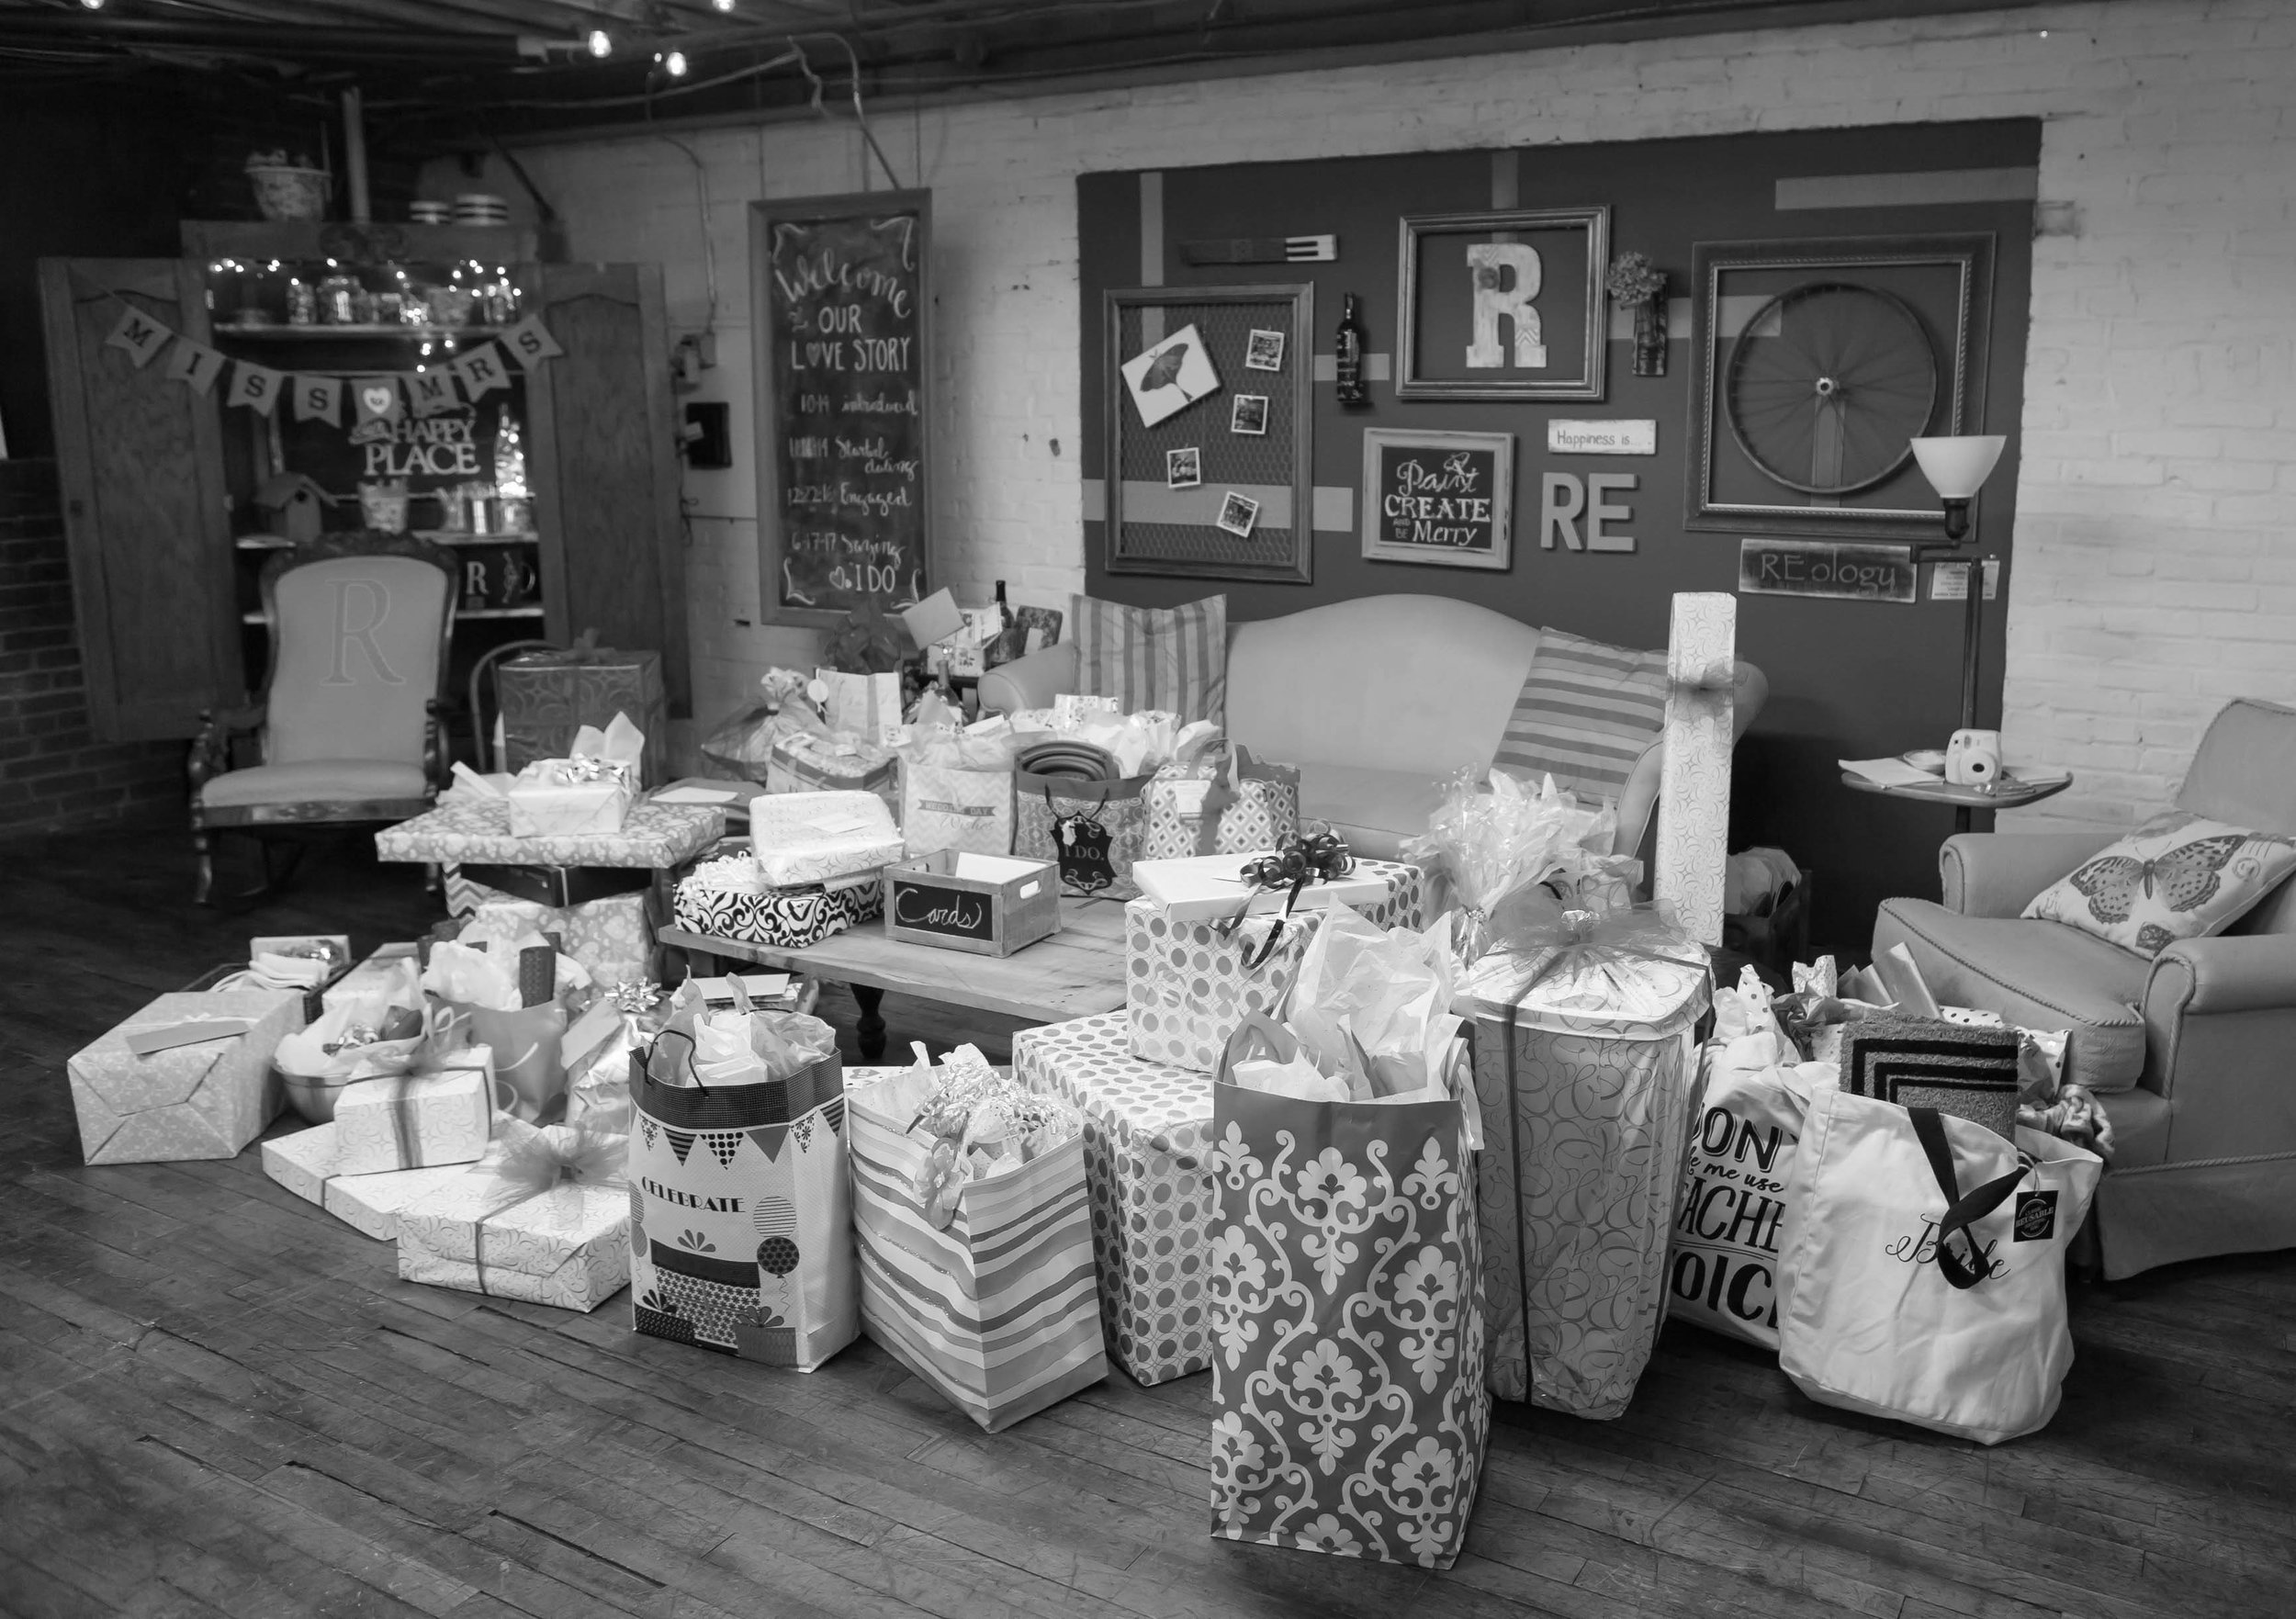 Lots-of-gifts-event-venue-reology.jpg